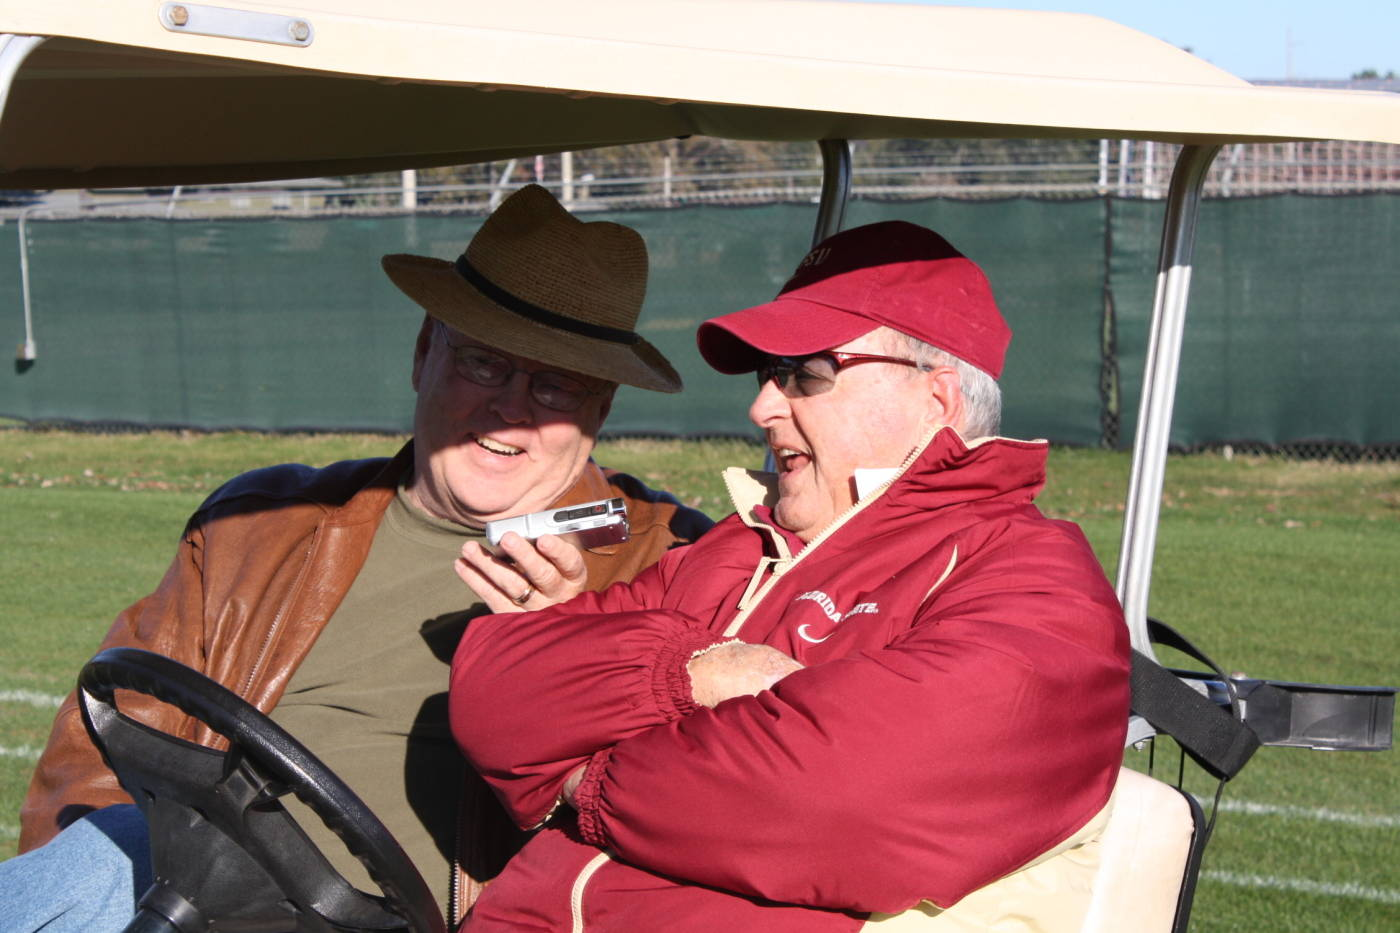 Coach Bowden does an interview in his golf cart before practice